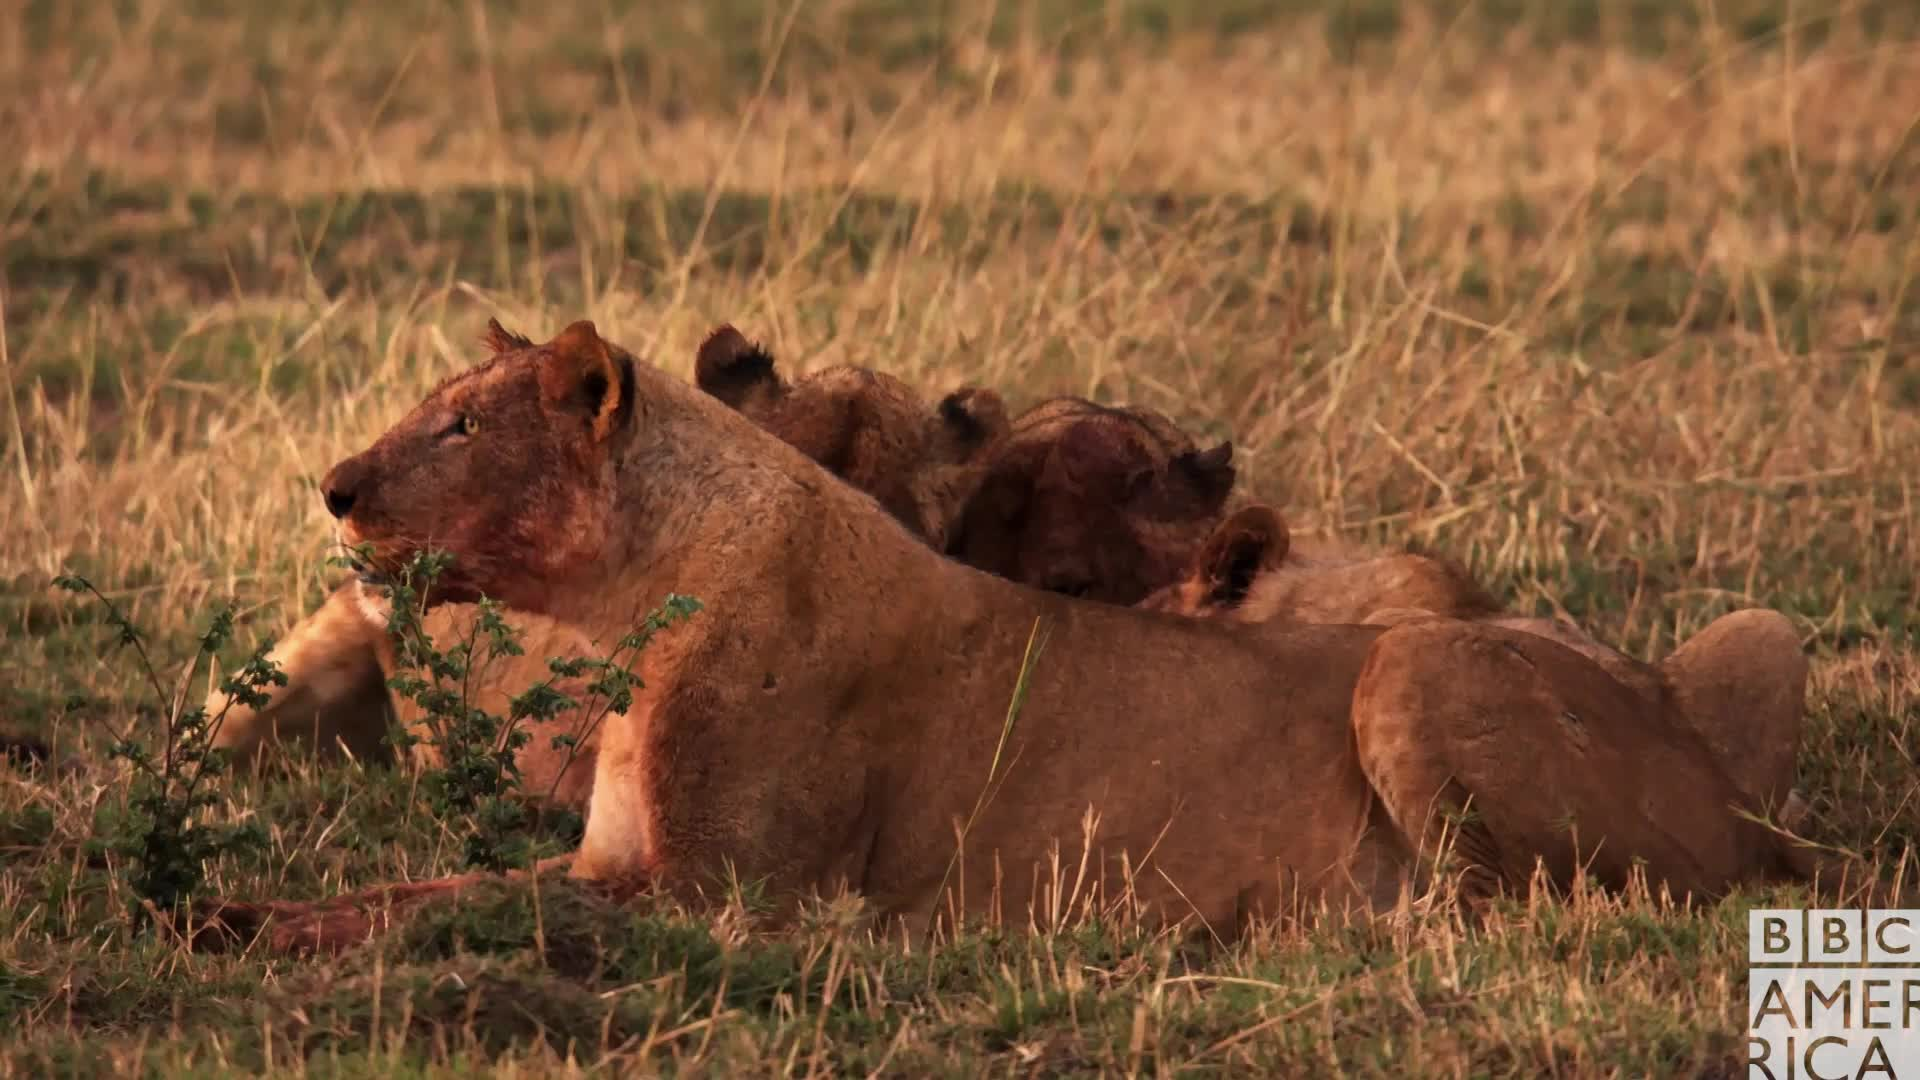 animal, animals, bbc america, bbc america dynasties, bbc america: dynasties, dinner, dynasties, eating, food, hungry, painted wolf, painted wolves, wolf, wolves, Dynasties Lions Eating the Wolves' Dinner GIFs